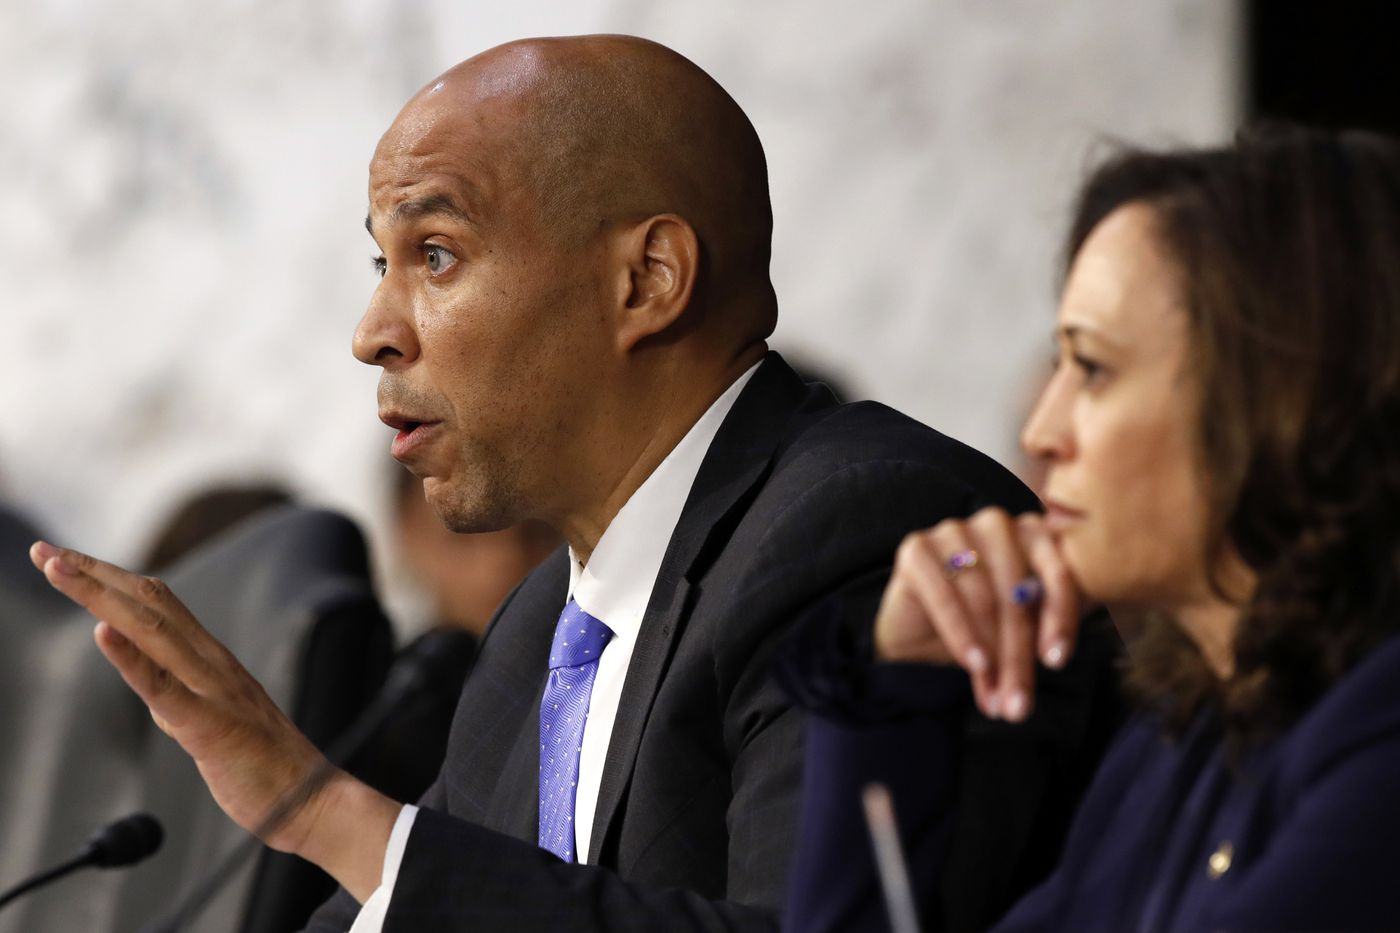 'Bring it': Cory Booker's Supreme Court stand